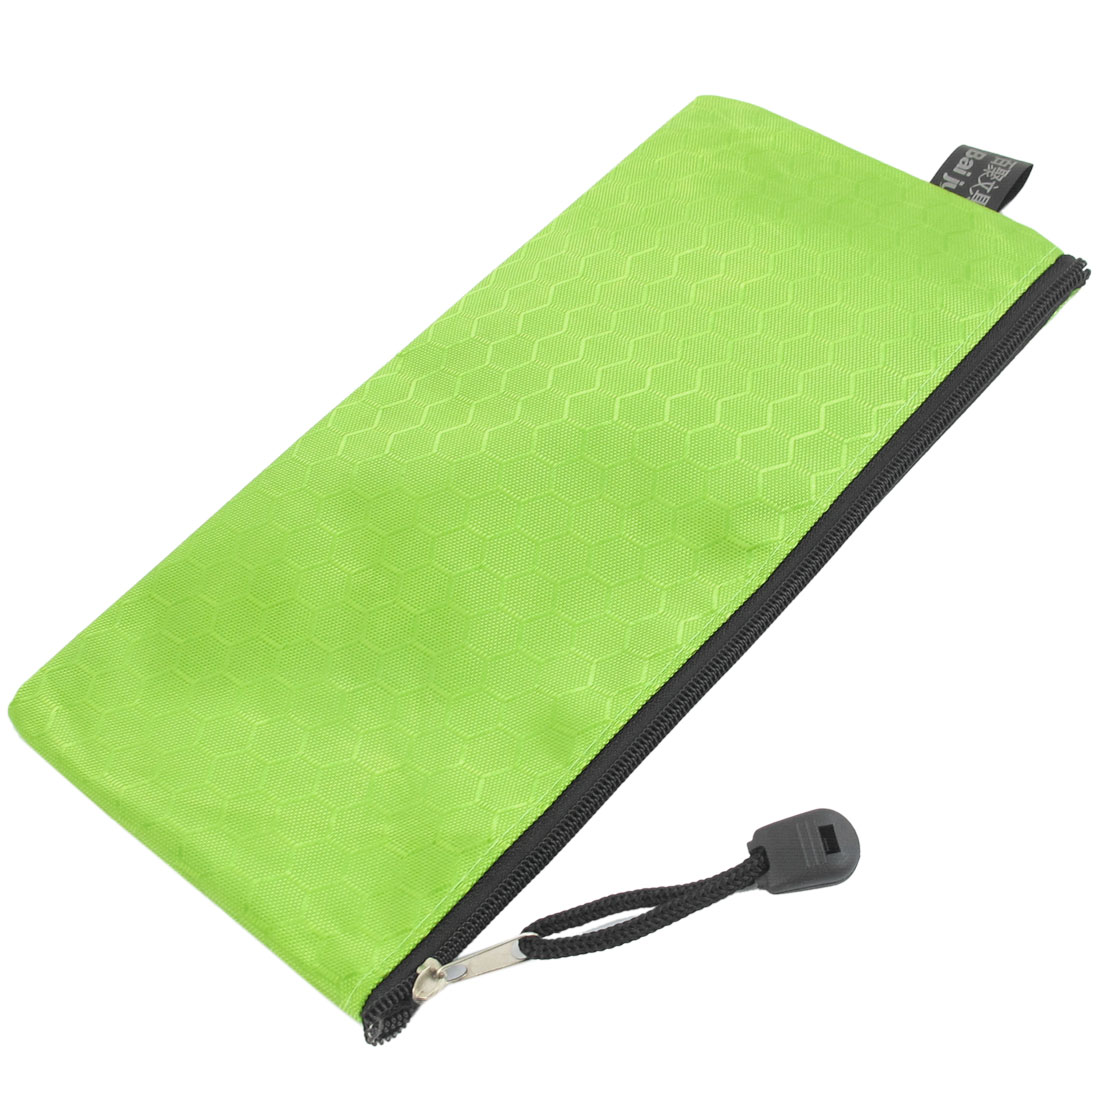 Unique Bargains PVC Canvas Zipper Closure Pencil Writing Instruments Bag Holder Green